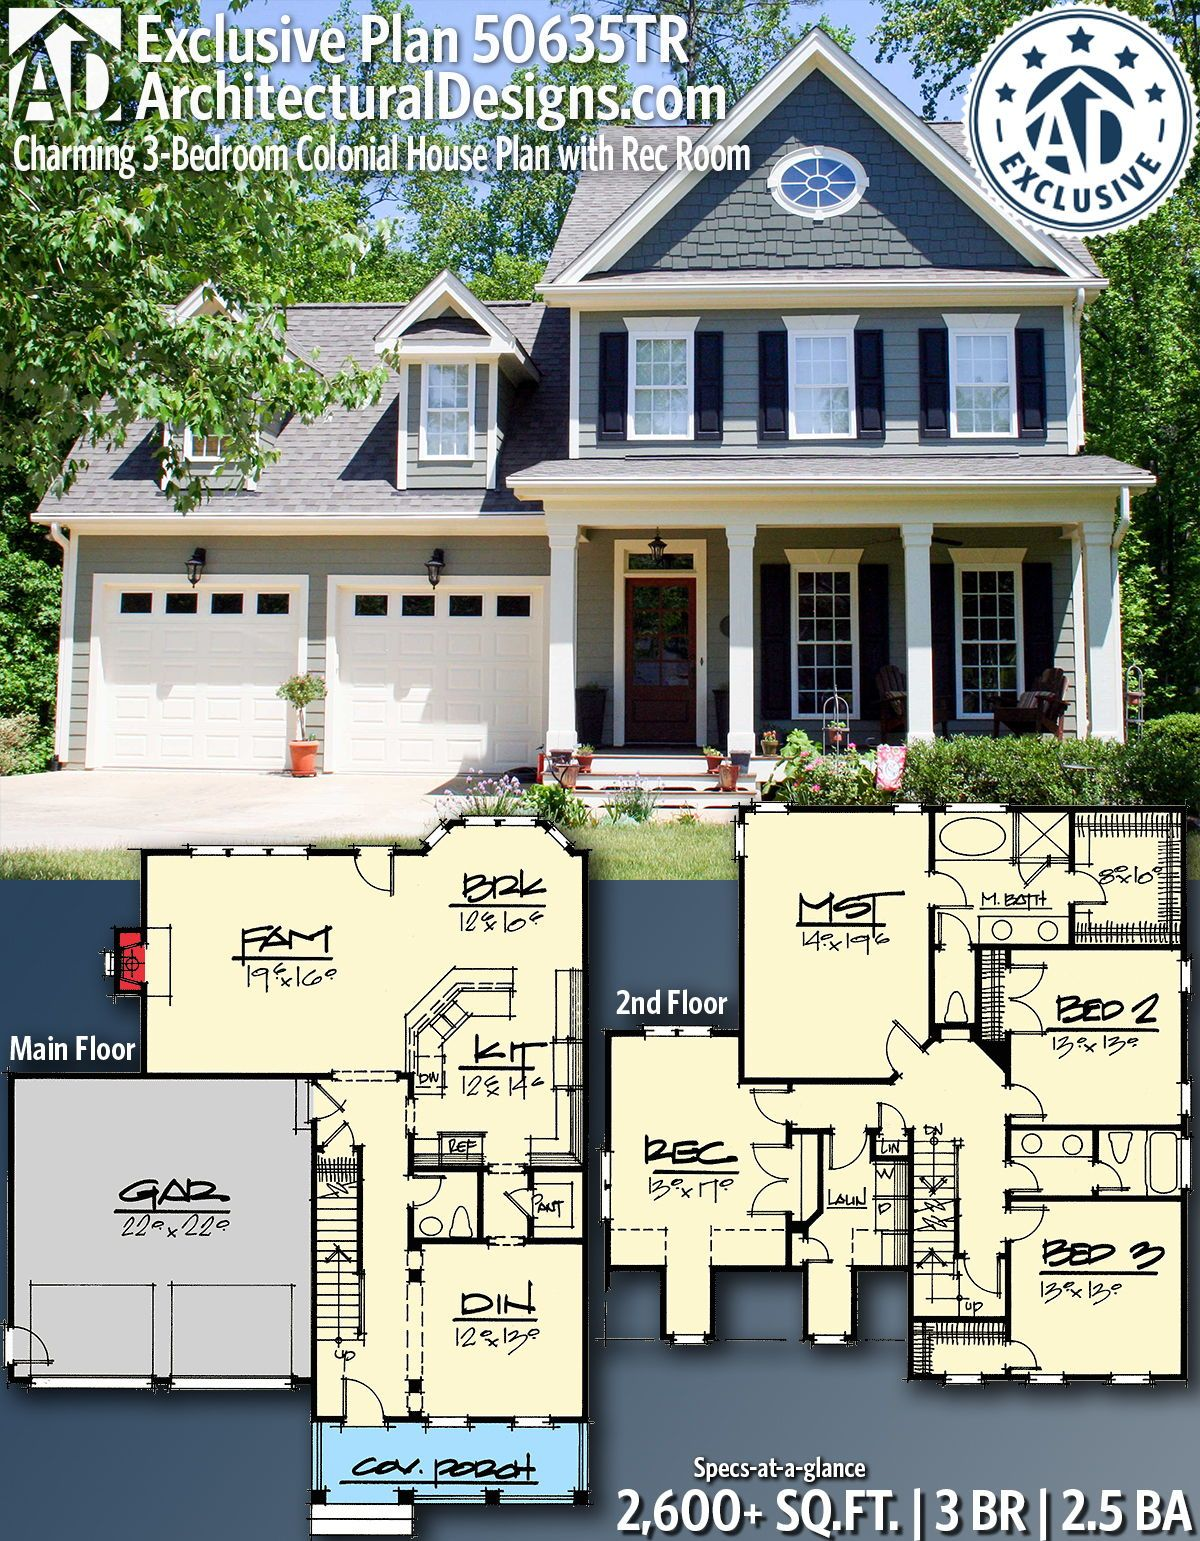 Plan 50635tr Charming 3 Bedroom Colonial House Plan With Rec Room